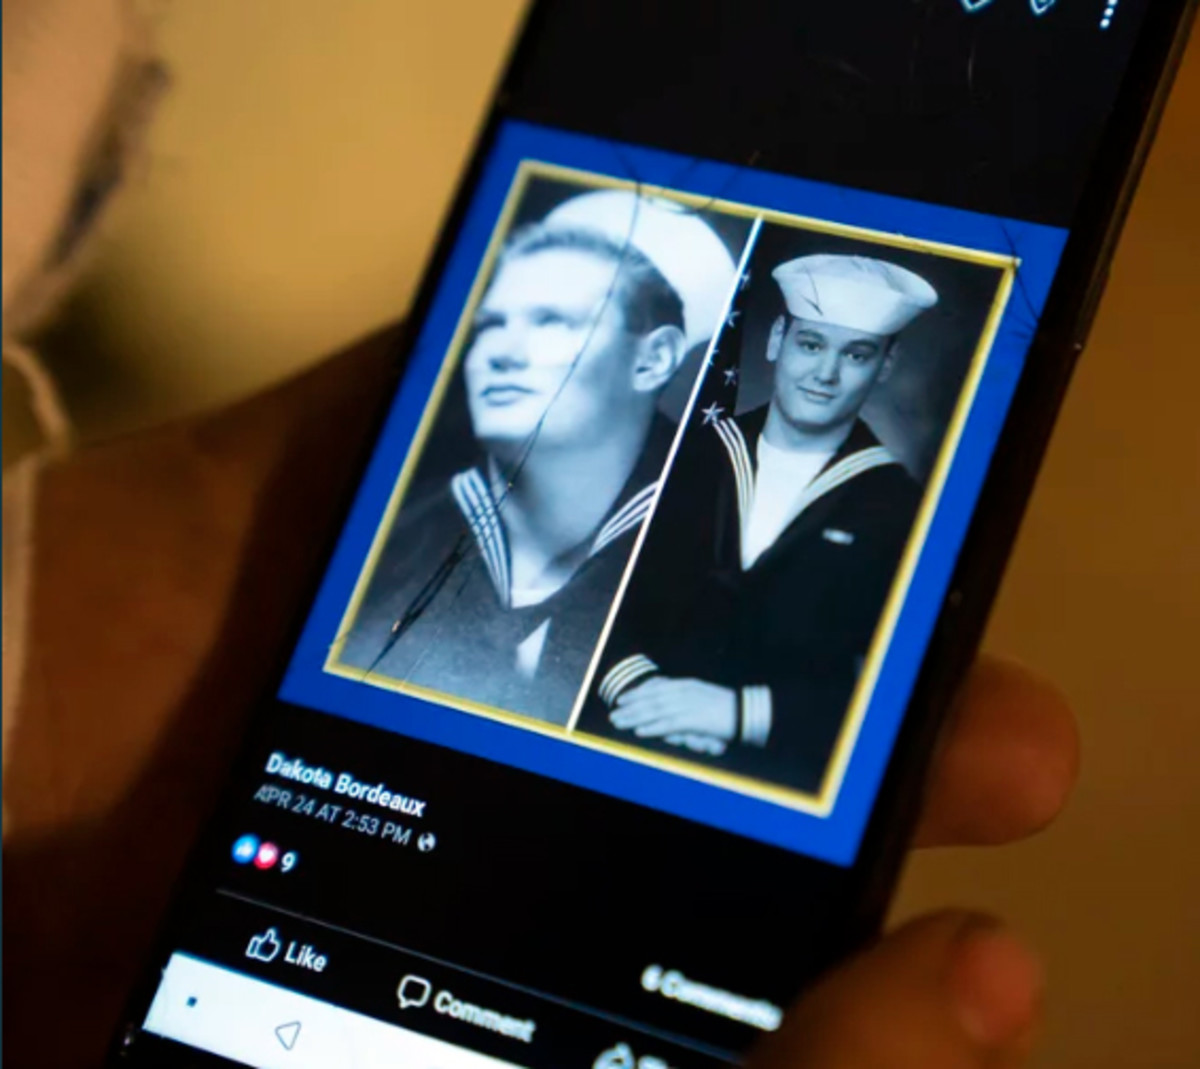 Bordeaux shows a collage on his phone of his grandfather, left, next to himself in uniform. (Nick Oxford for ProPublica)